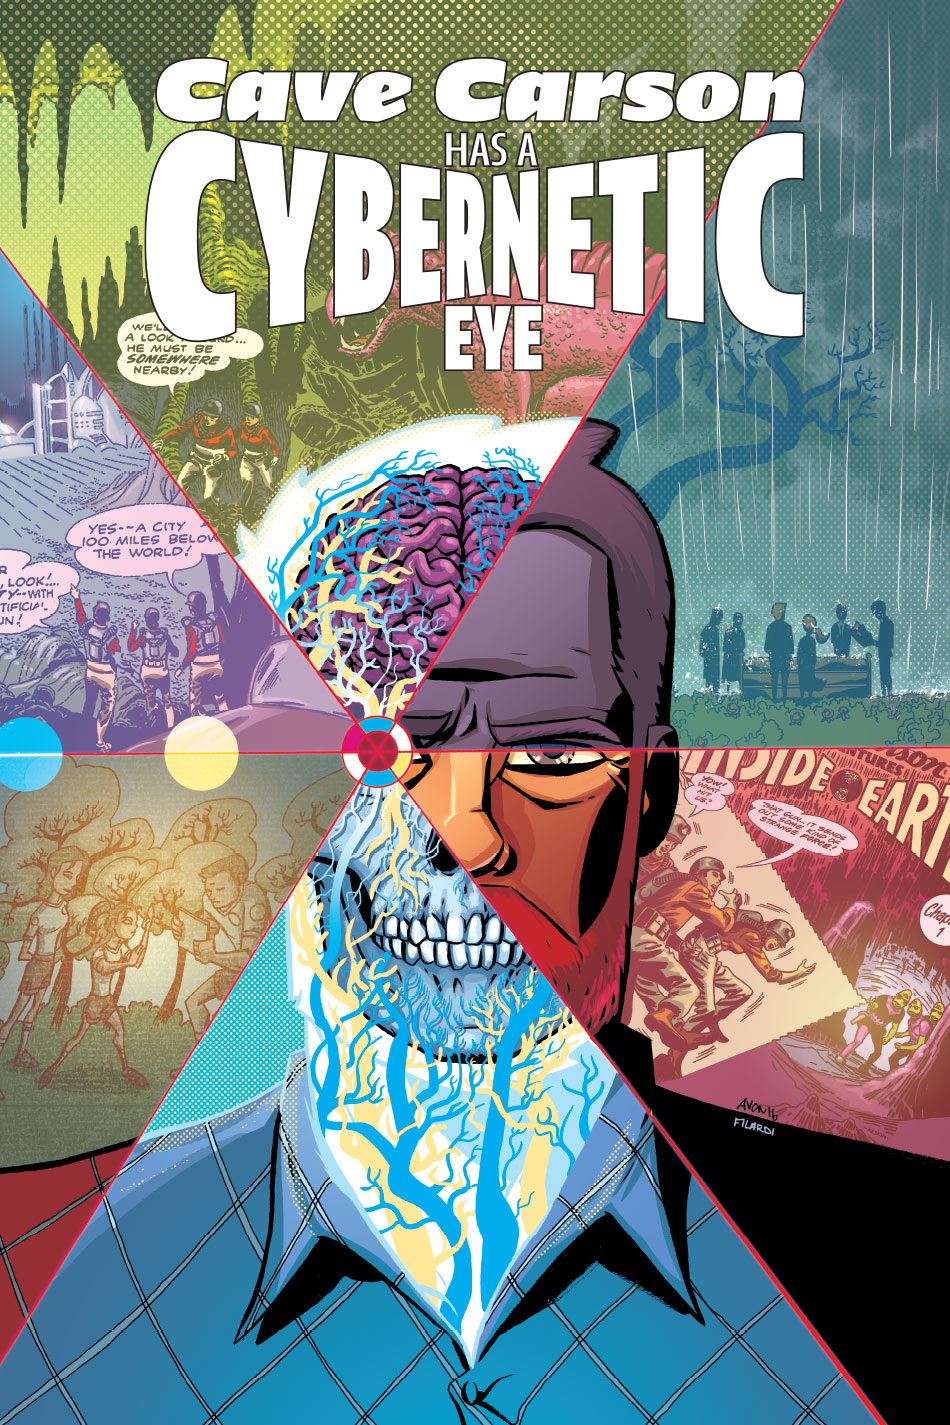 DC Preview: Cave Carson Has a Cybernetic Eye #1